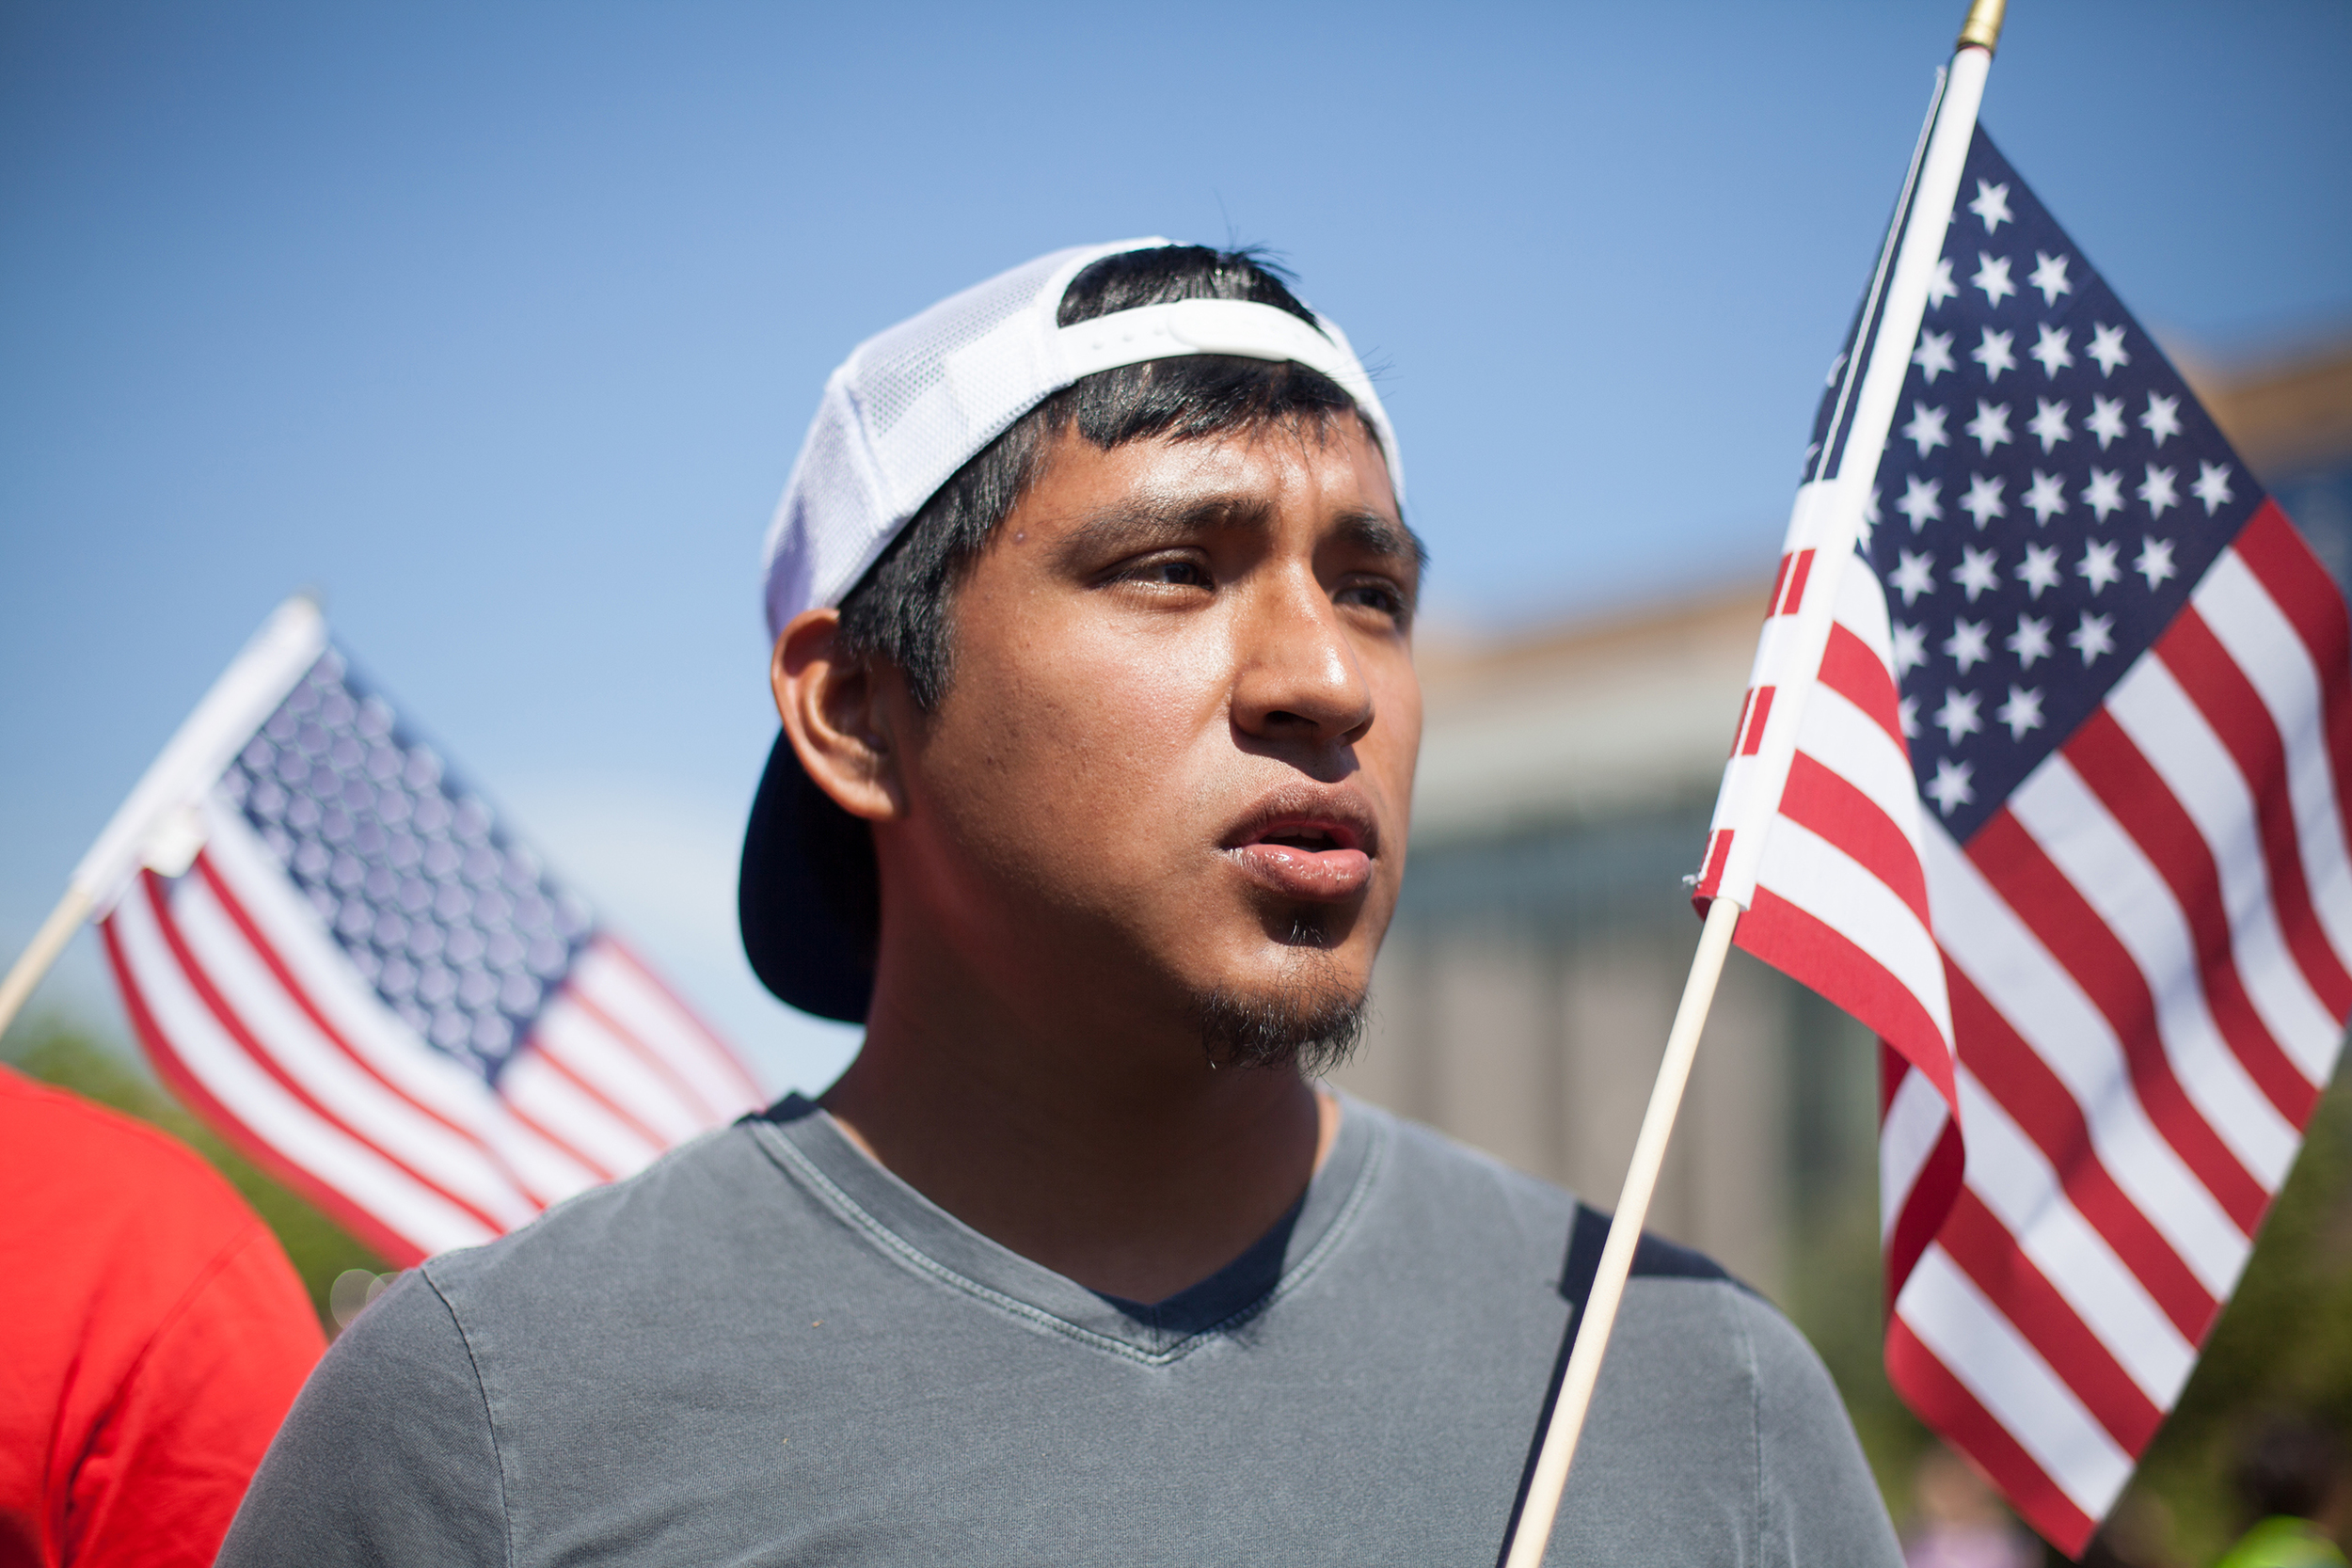 Texas A&M student, Issac Chavez protesting immigration reform during President Barack Obama's arrival to the Civil Rights Summit at the LBJ Presidential Library.